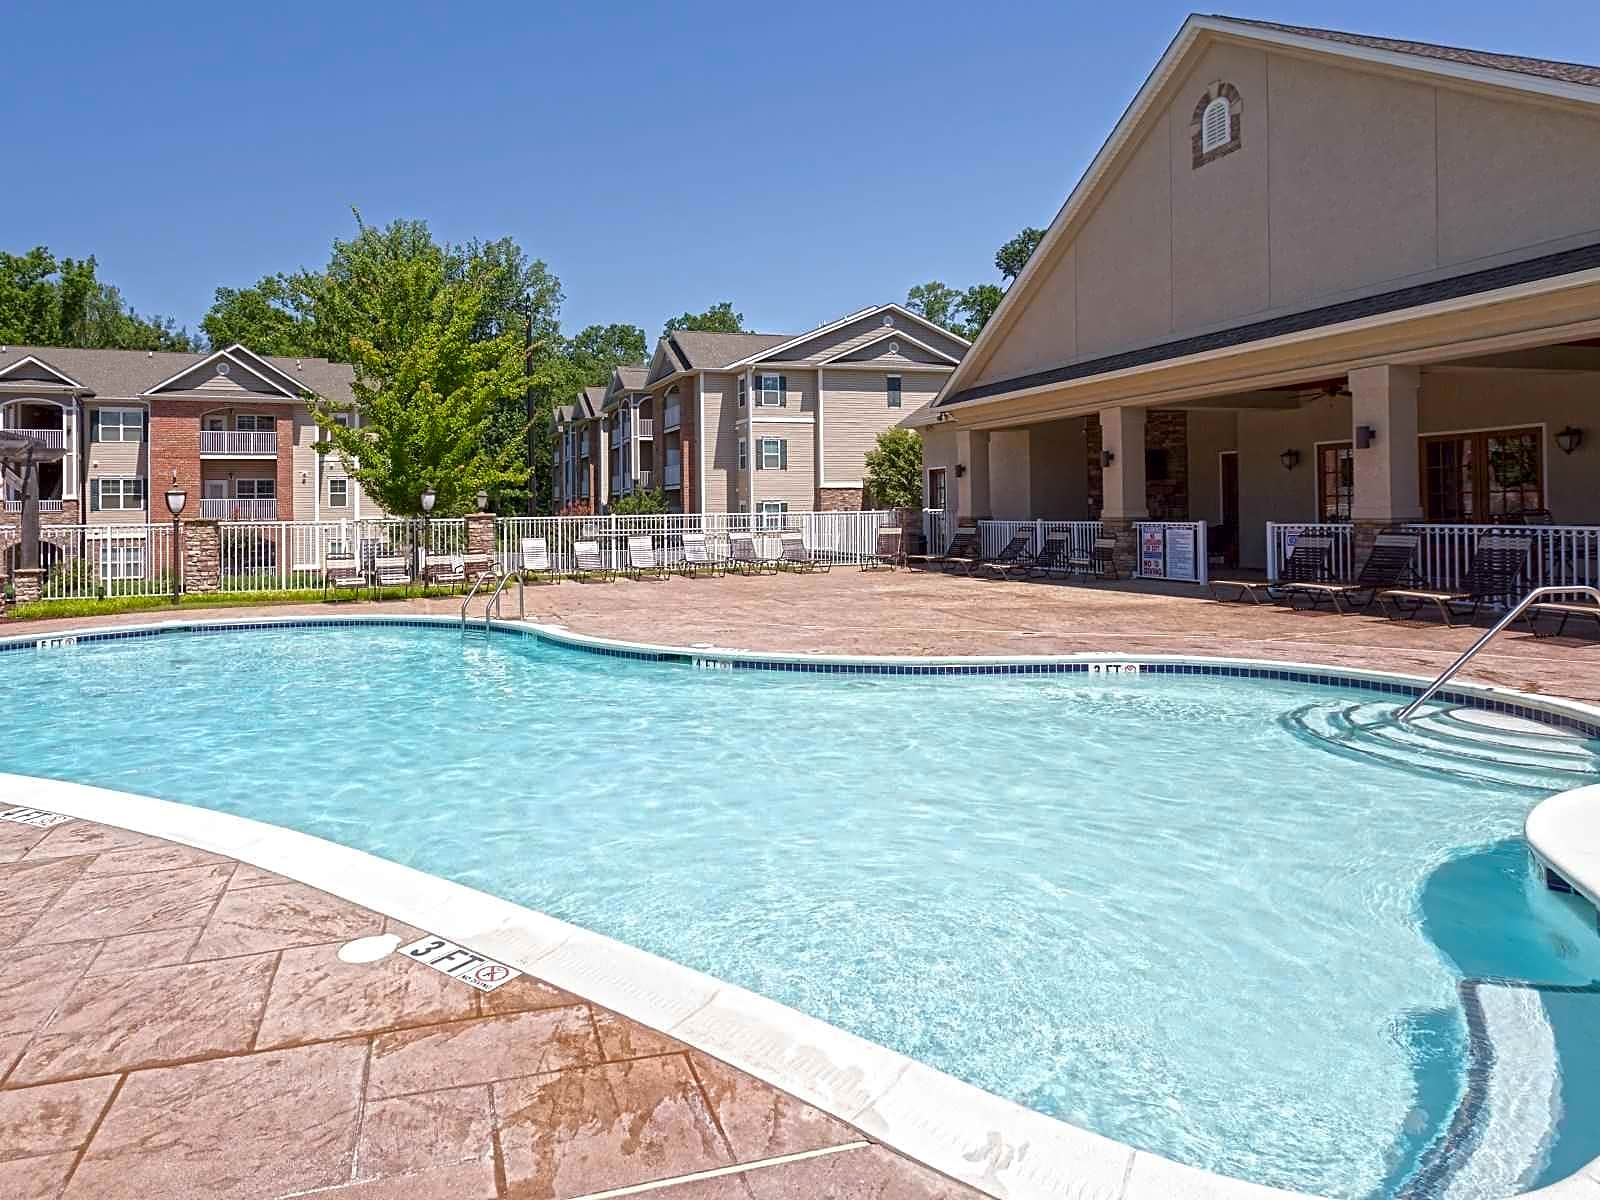 Apartments Near Fayetteville Cliff Creek Apartments for Fayetteville Students in Fayetteville, NC